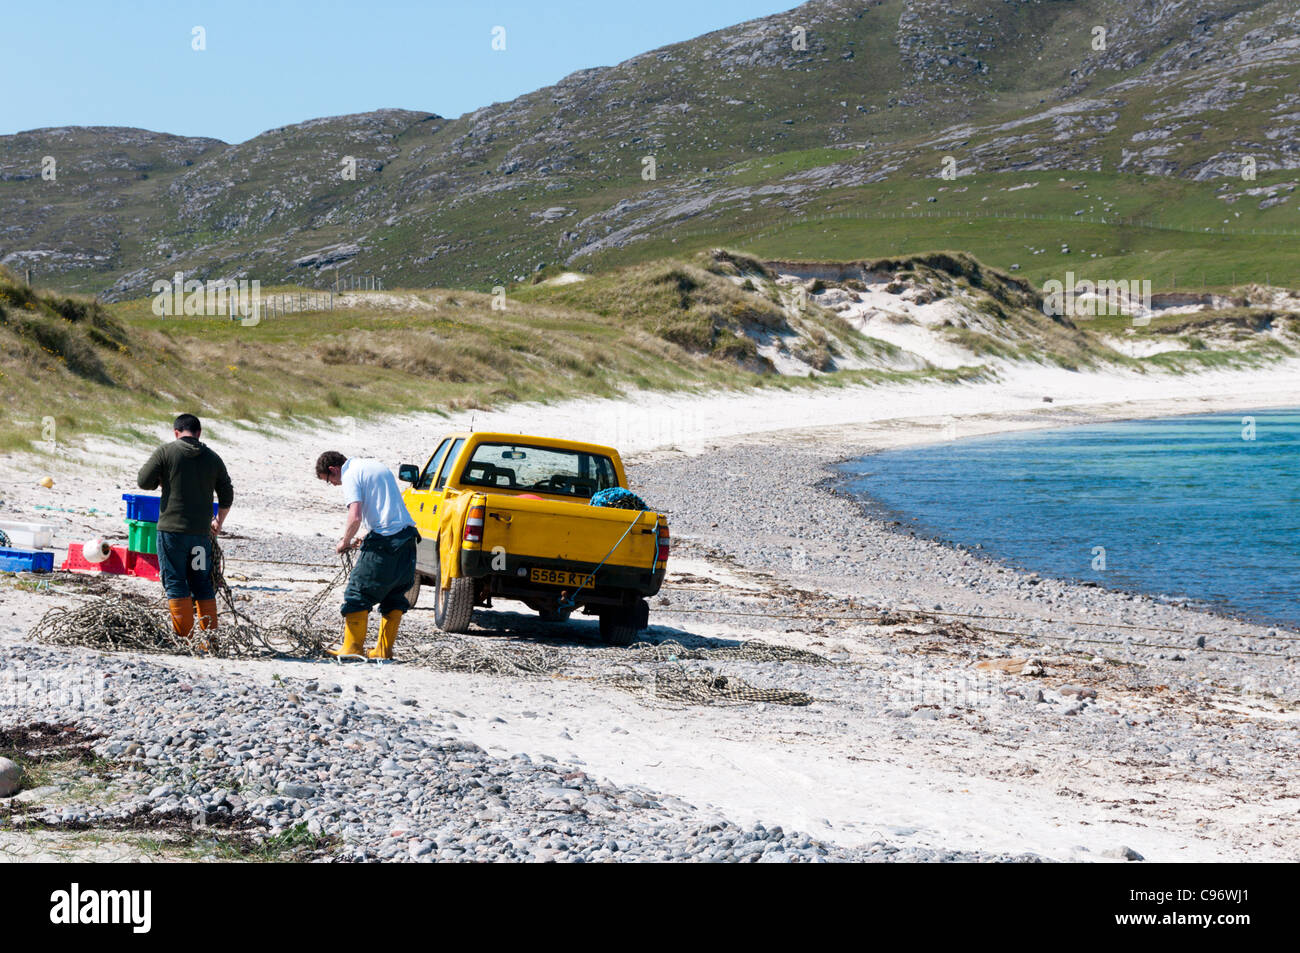 Two fishermen working next to a van parked on the beach at Vatersay in the Outer Hebrides. - Stock Image